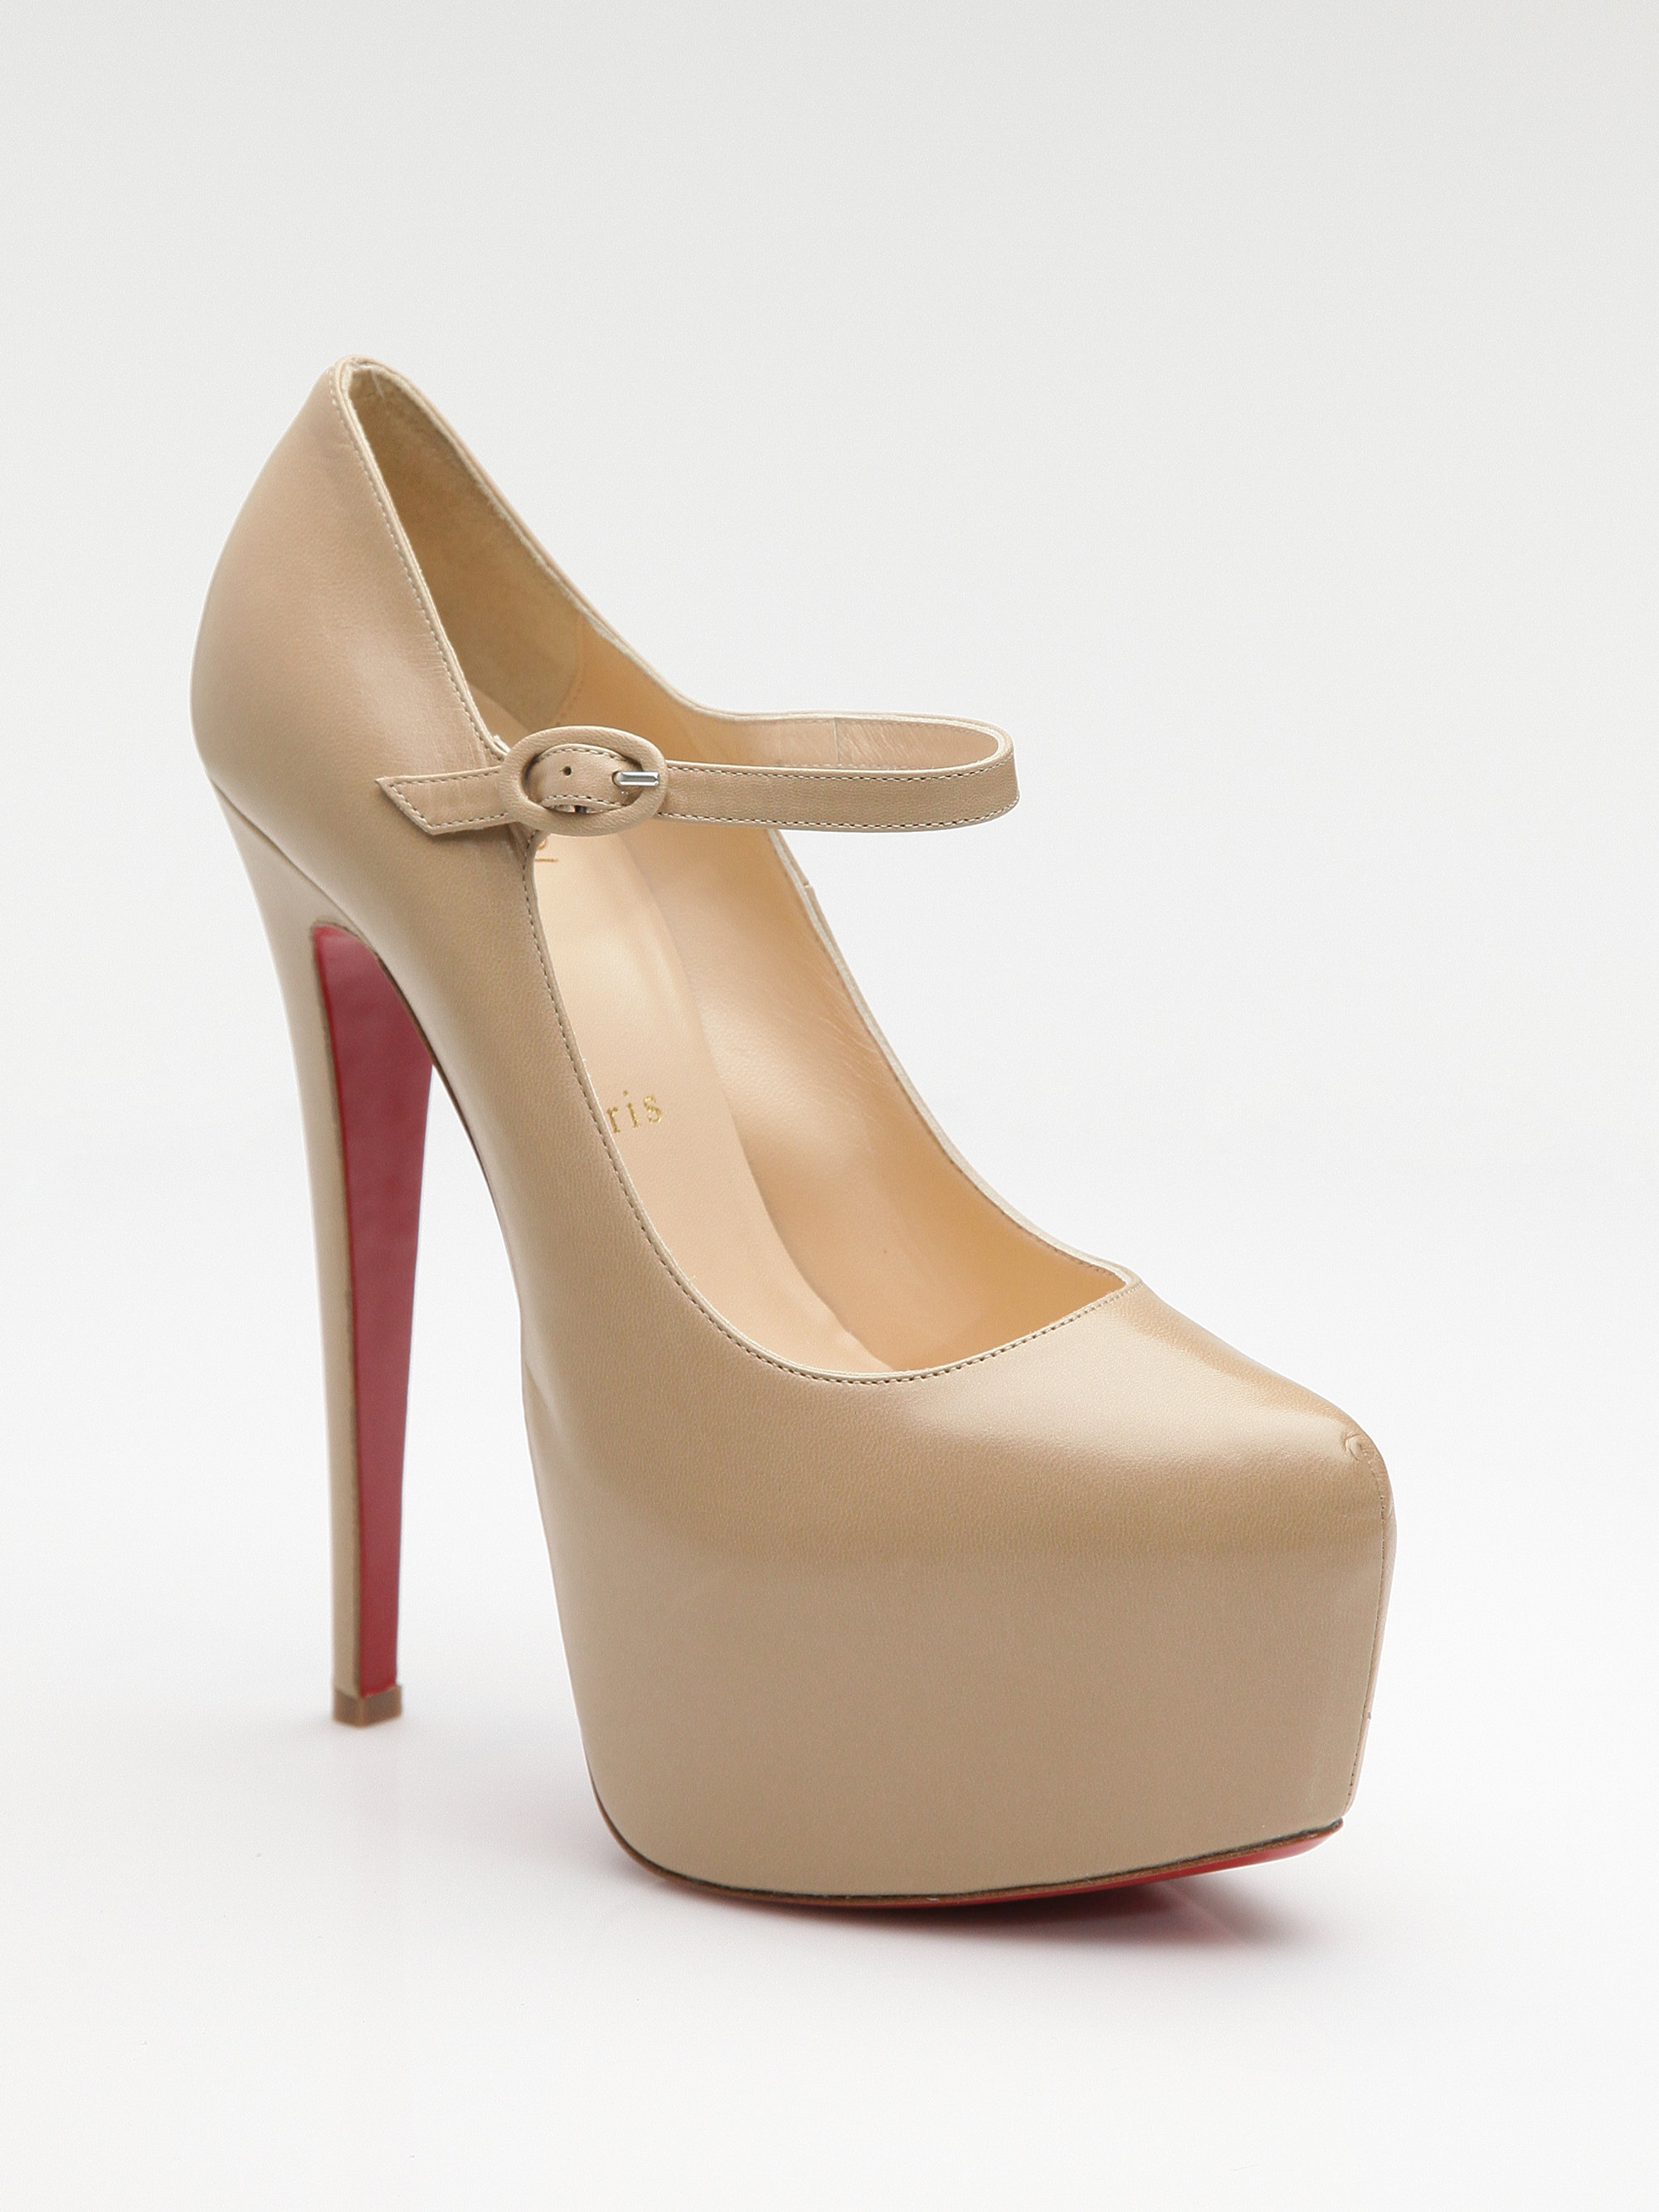 christian louboutin mary jane pumps lady daf 160 beige